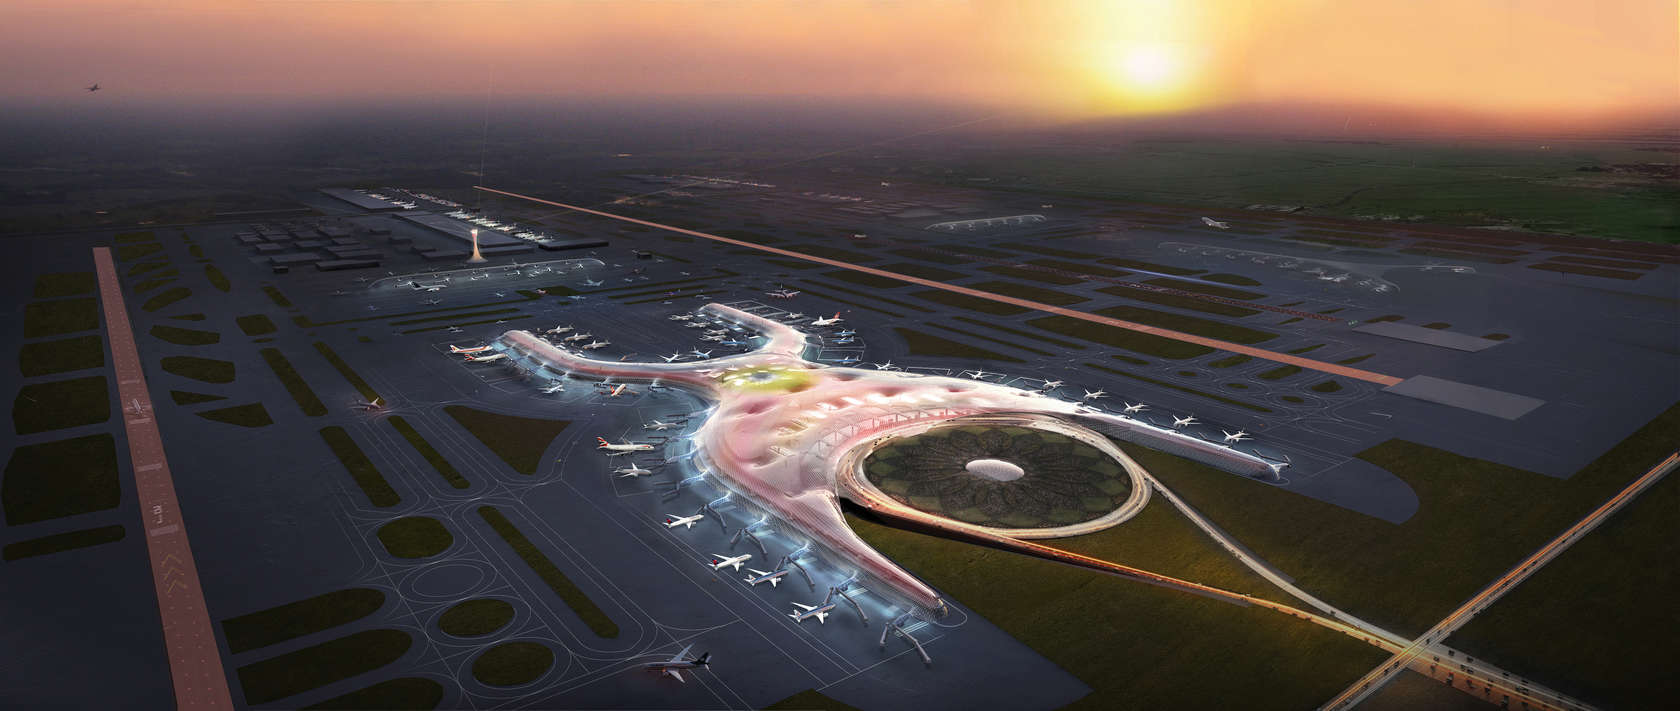 The new airport was slow to expand, only serving two million passengers a year by , but it served over five million annually by and an expansion plan was approved in